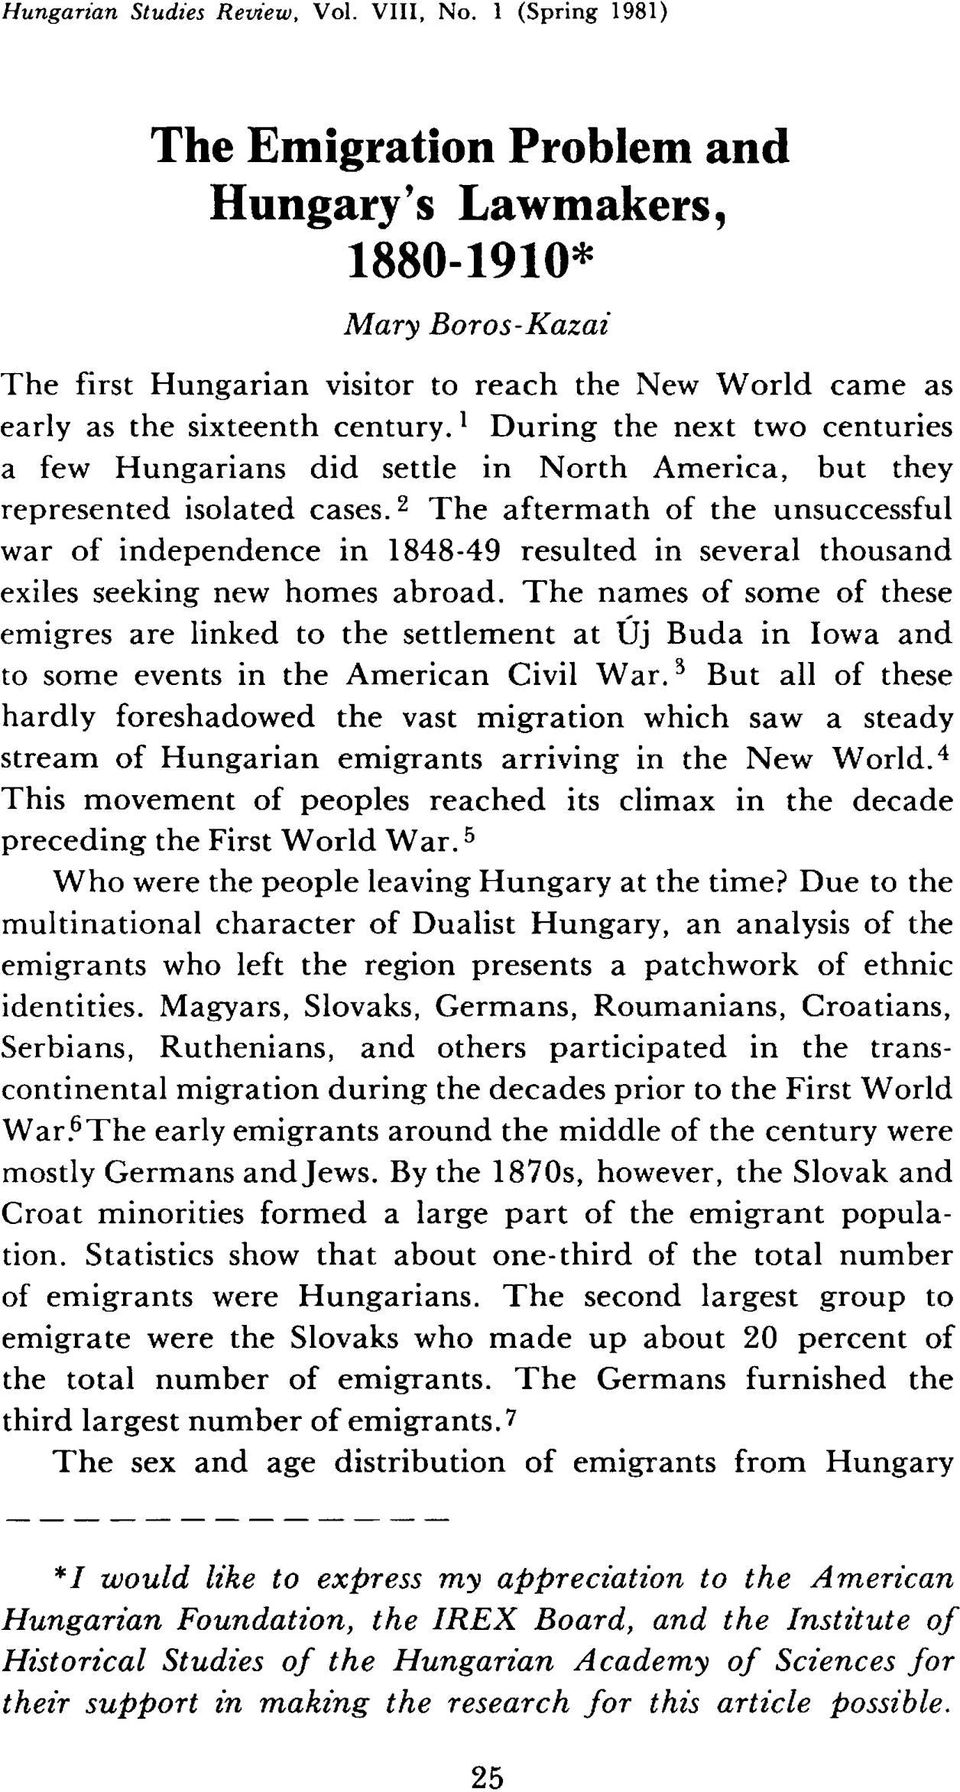 1 During the next two centuries a few Hungarians did settle in North America, but they represented isolated cases.